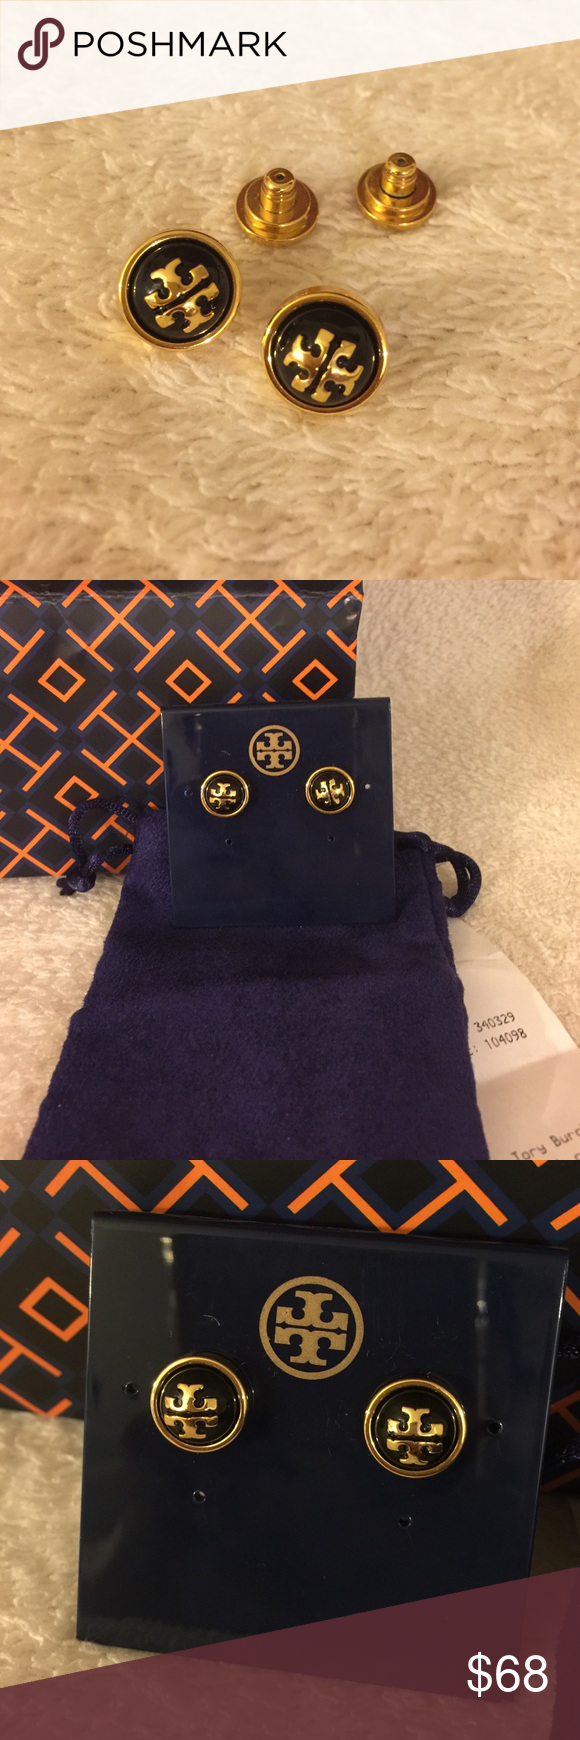 Tory Burch stud earring black Brand new never wear with mini Tory accessories pouch. Price is firm. Can't combine with bundle offer! Tory Burch Jewelry Earrings